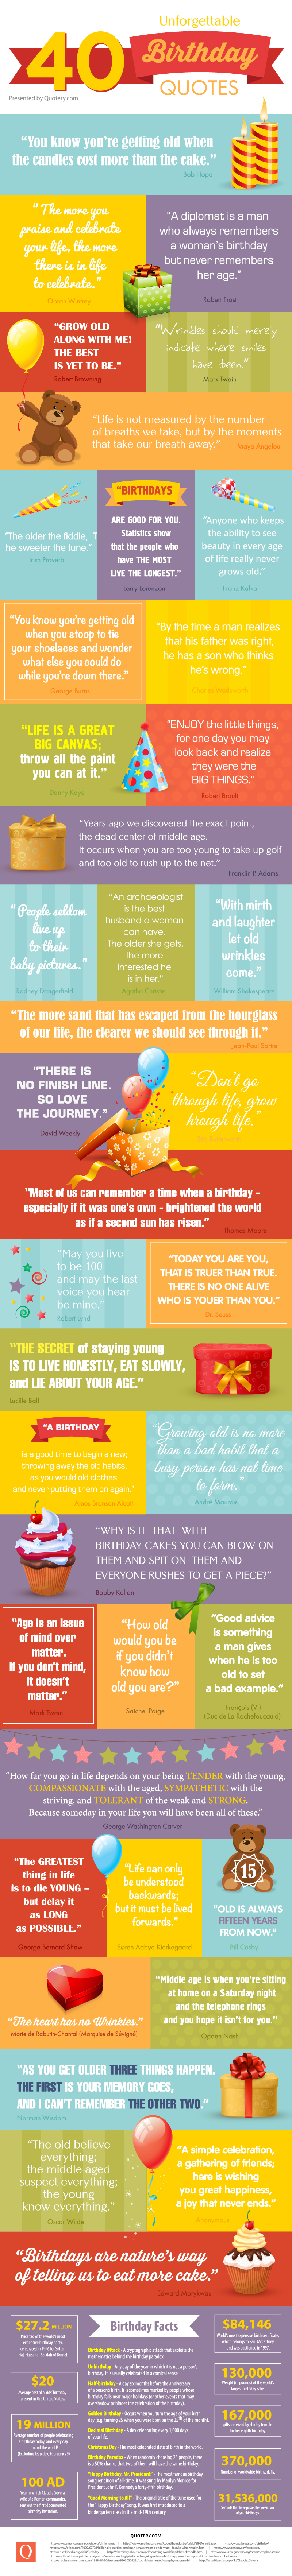 40 Unforgettable Birthday Quotes Infographic Infographic